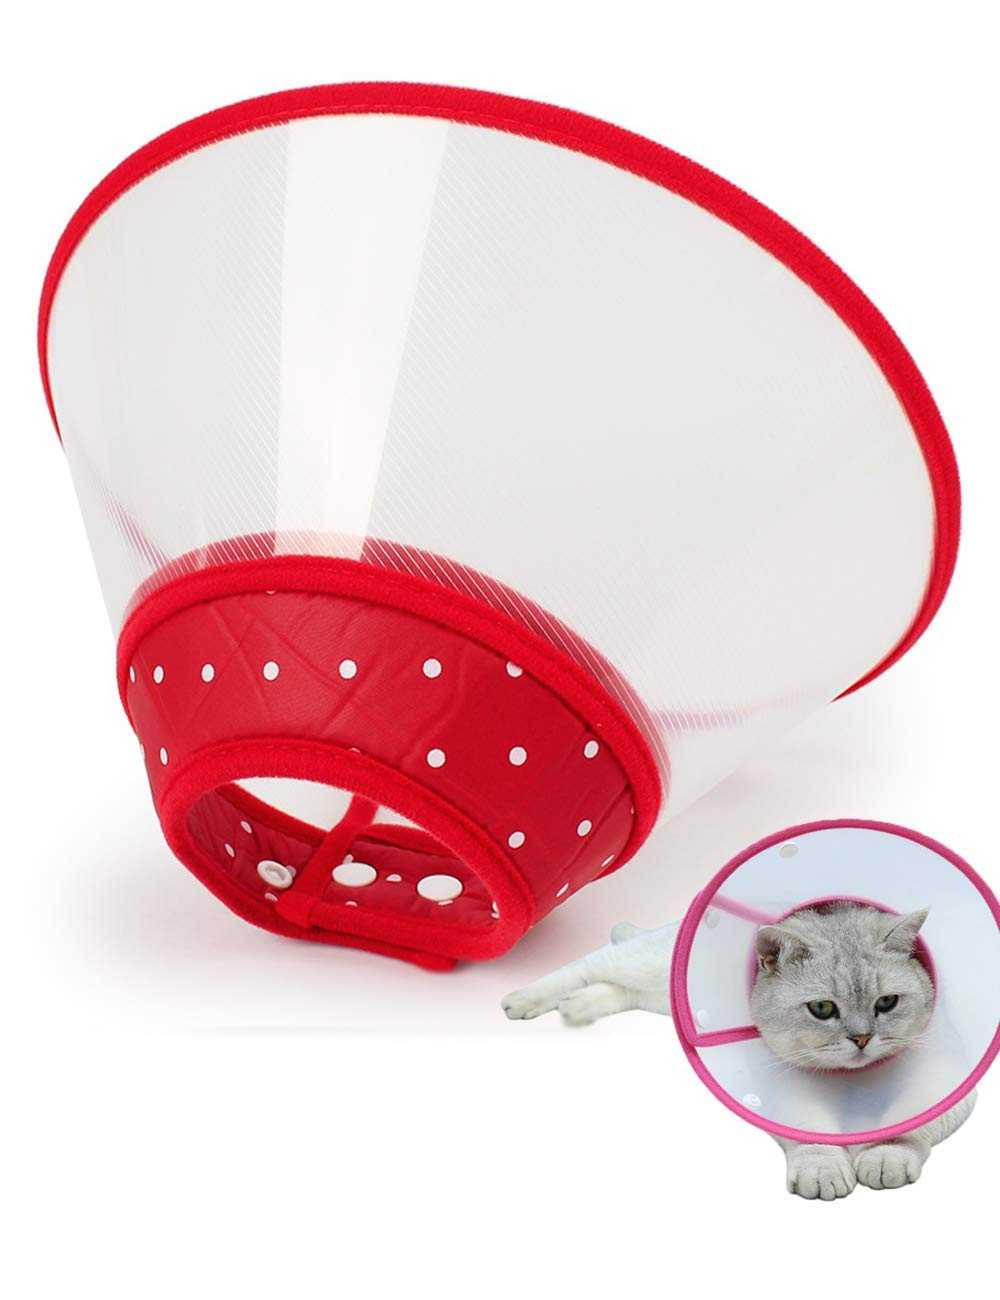 Xqpetlihai Adjustable Recovery Collars & Cones for Small Dogs & Cats,with Soft Edge Anti-bite Lick Wound Healing Safe and Practical Plastic Electronic Collar for Dogs and Cats (M, RED)